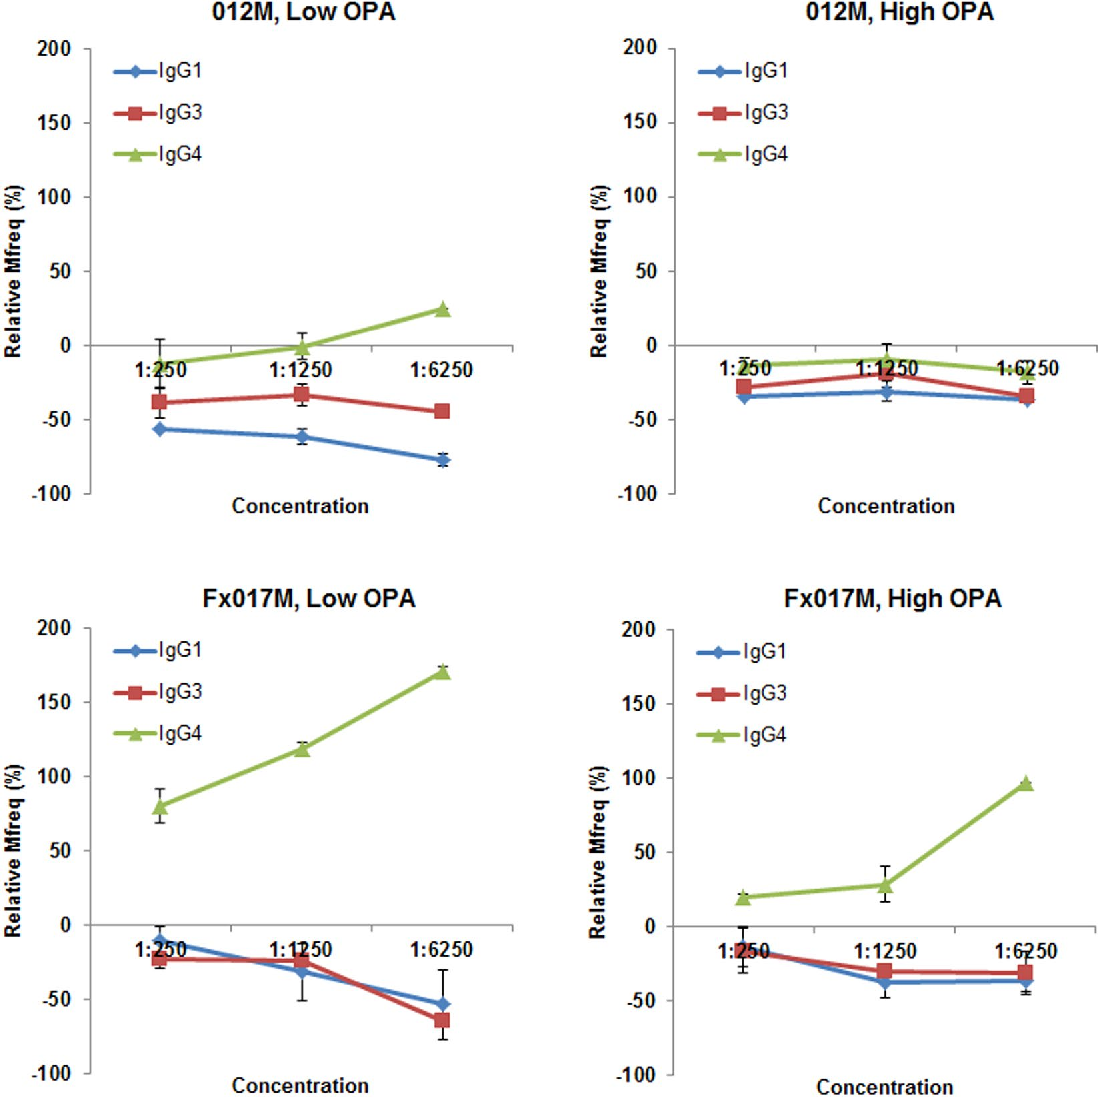 Figure 5. Serum opsonophagocytic activity following depletion of IgG isotype subclasses at a range of serum concentrations. The change in Mfreq relative to the non-depleted sample is shown following depletion of IgG1, IgG3, and IgG4 for the low-OPA and high-OPA pools for the 012M and Fx017M cohorts.